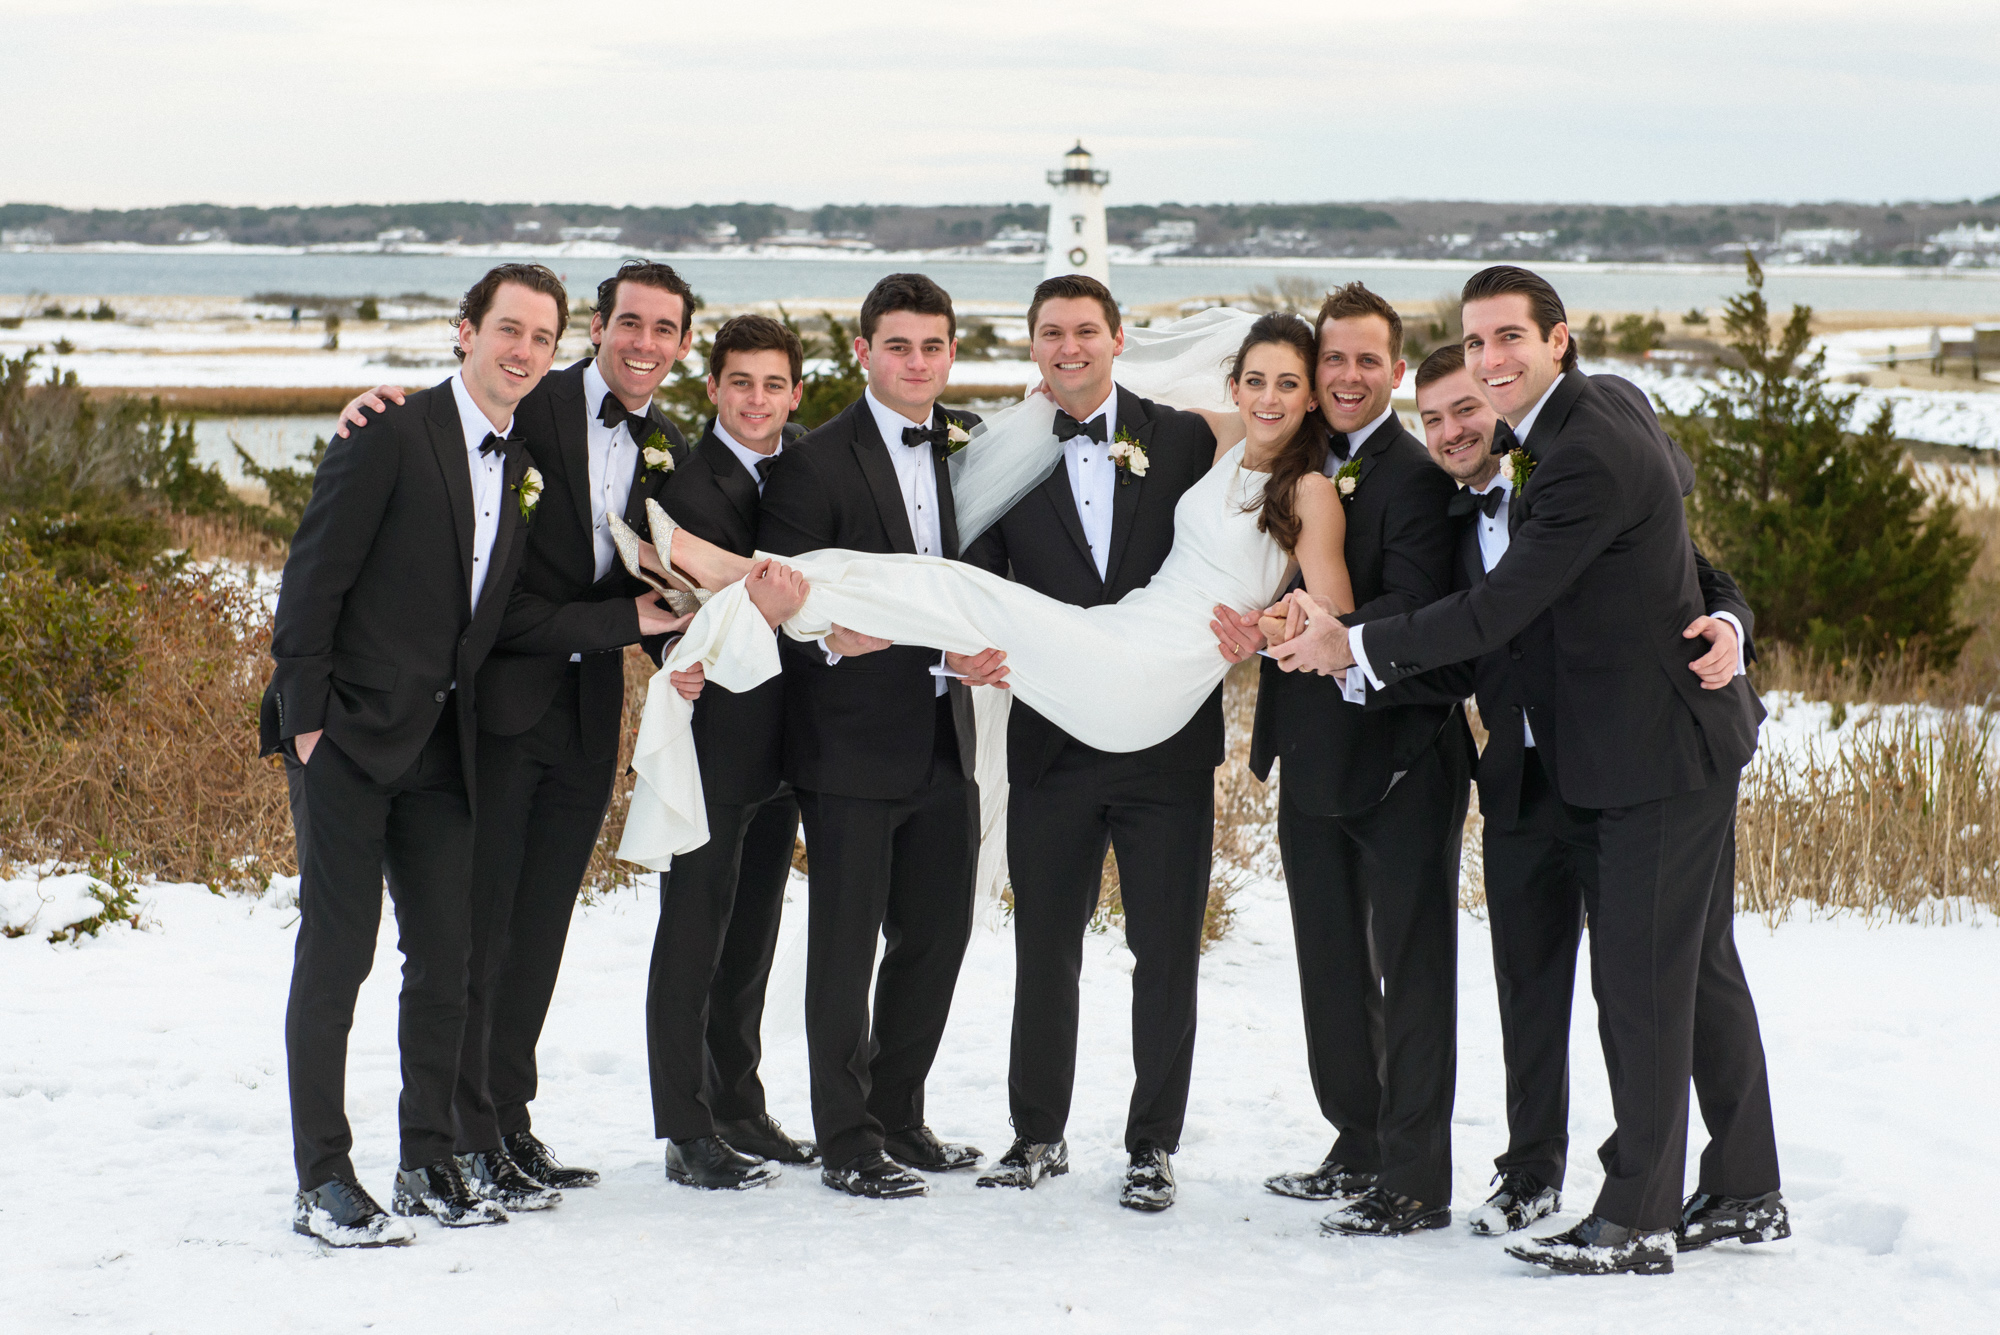 A groom and his groomsmen hoist a bride on a snowy day in Edgartown across from the Harbor View Hotel  photo by David Welch Photography